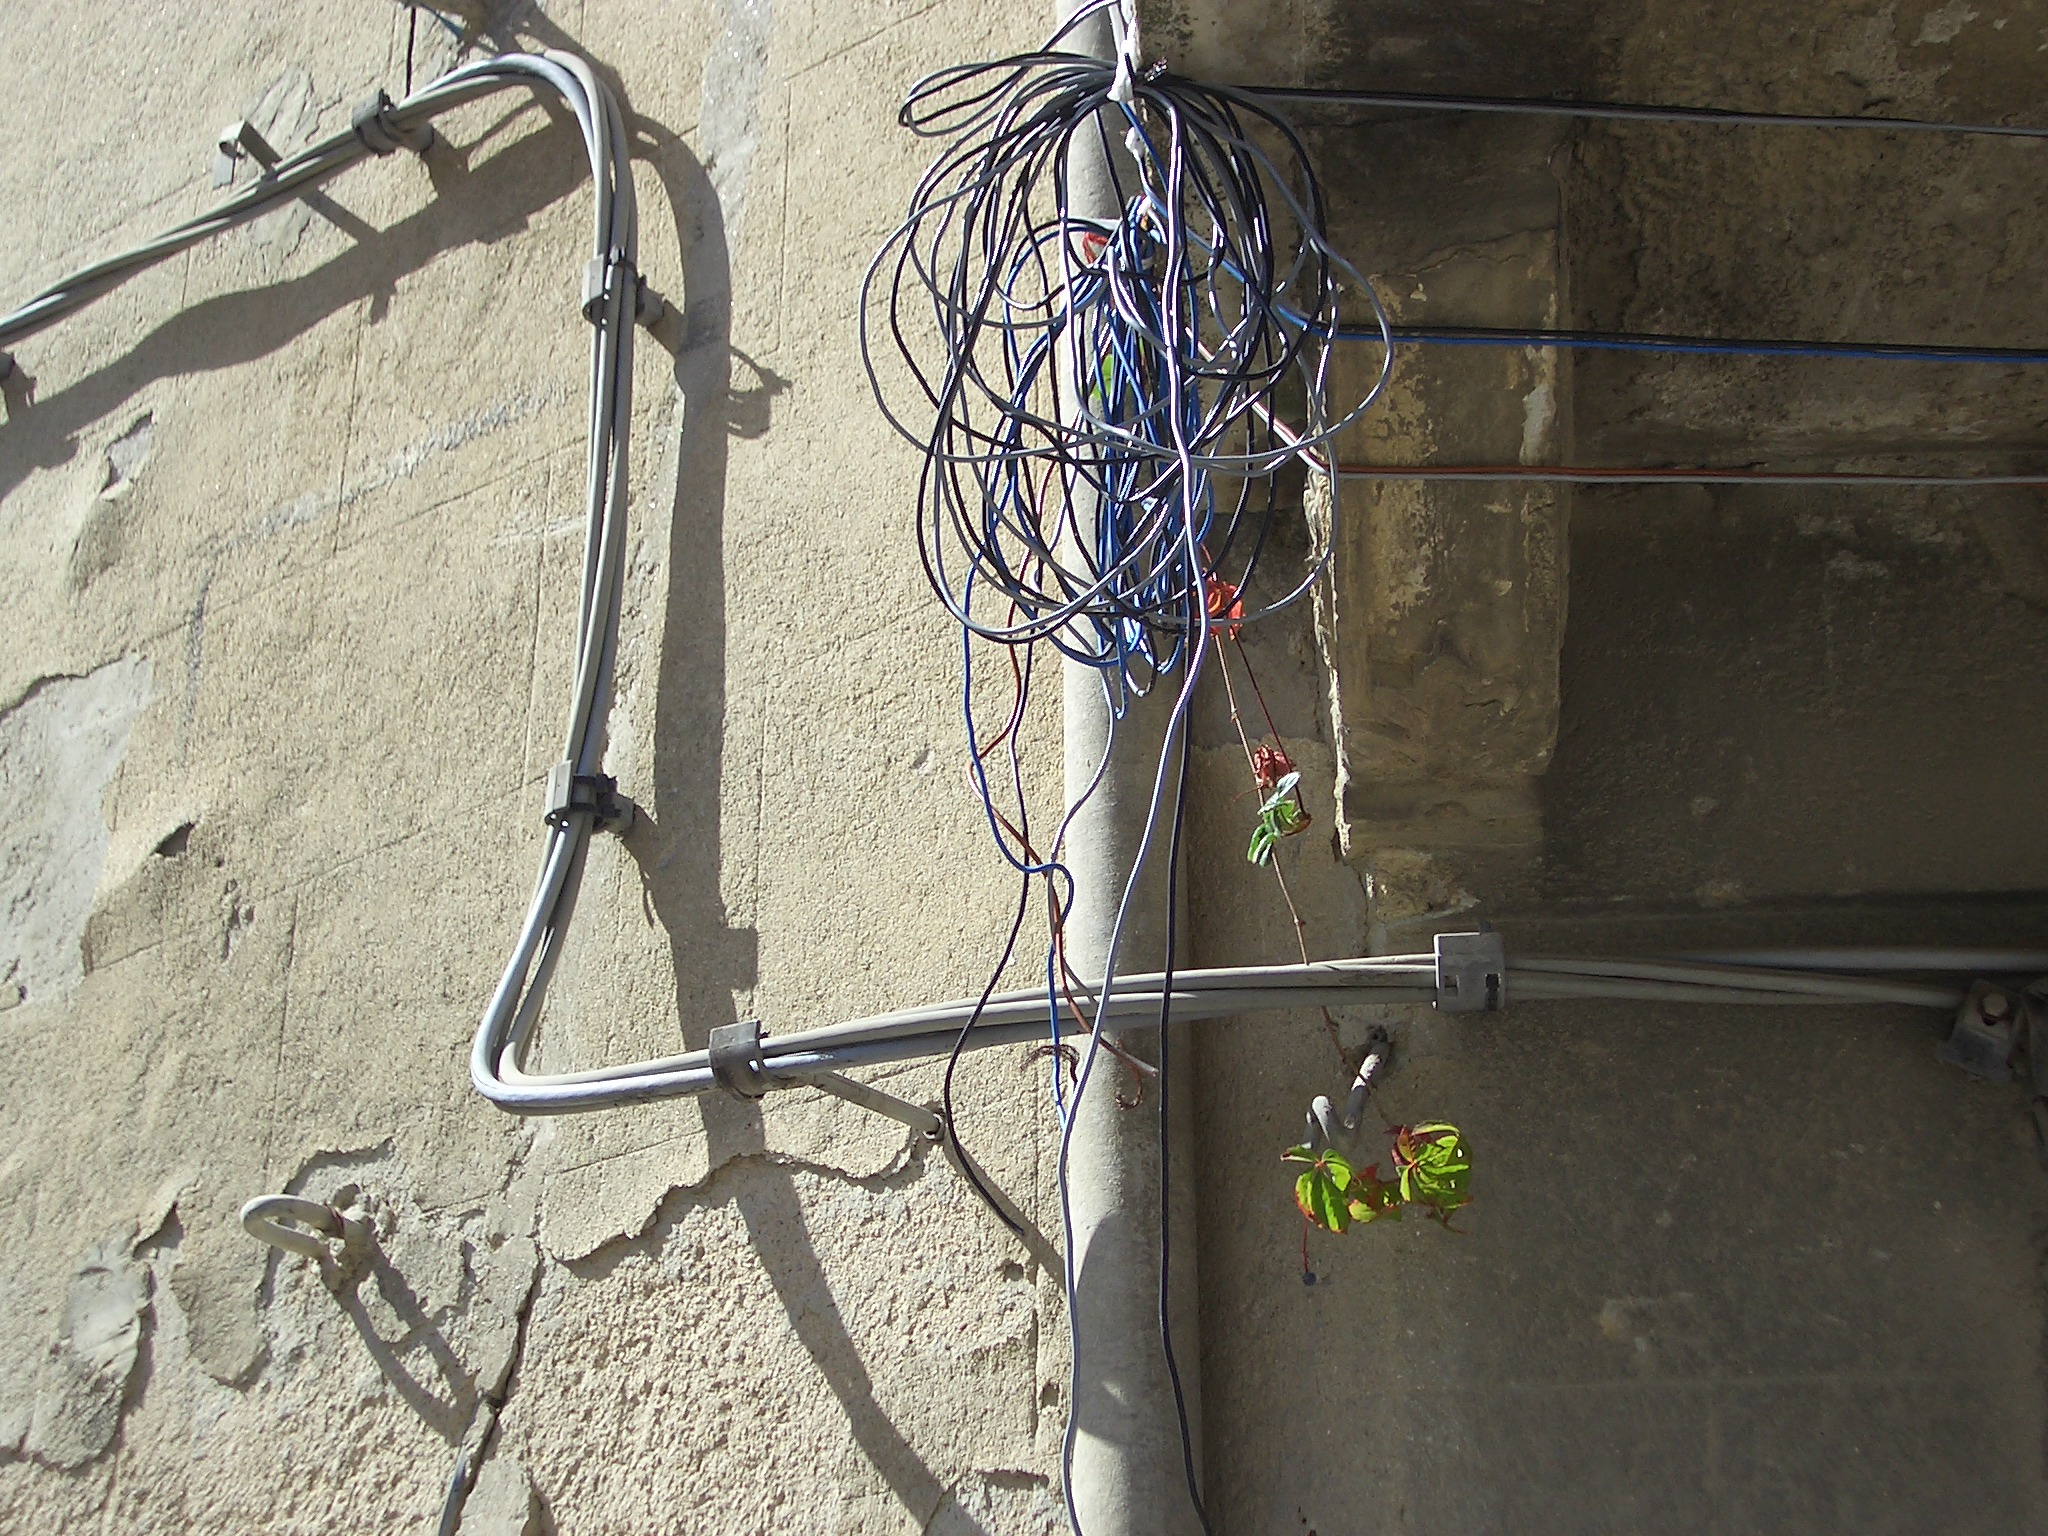 sicilian electrical wiring and other health and safety issues the rh siciliangodmother com safety for electrical wiring electrical wiring safety procedures